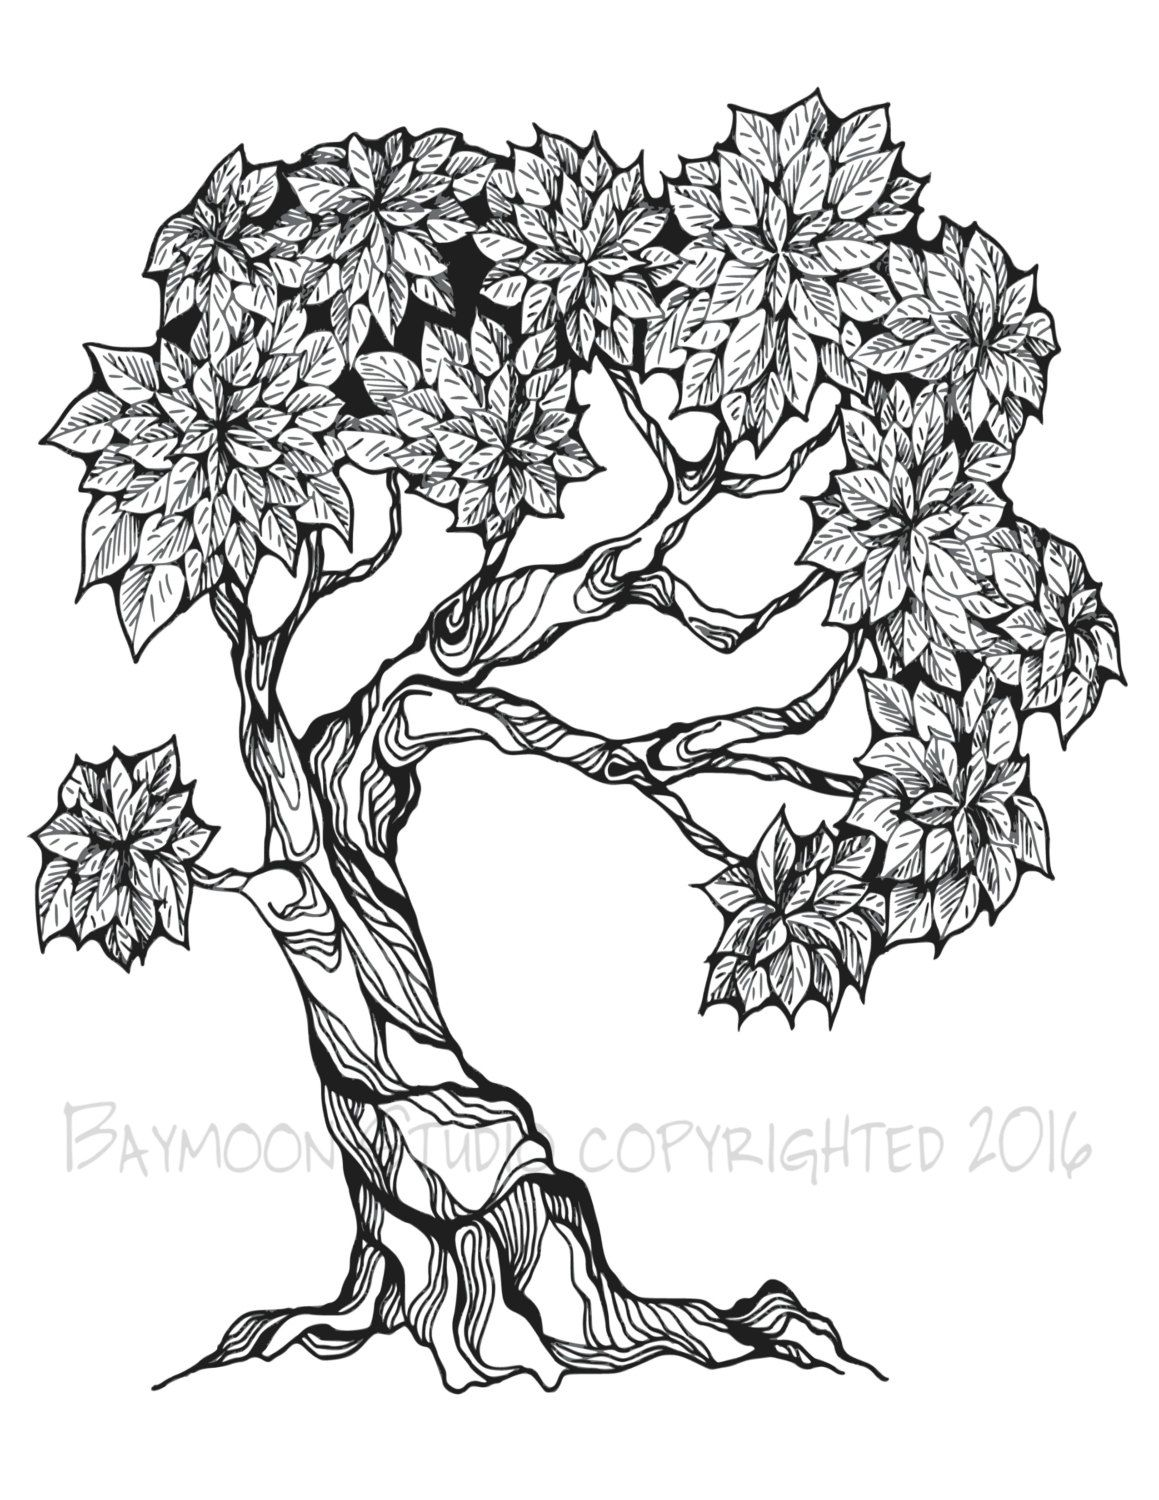 Bonsai Tree Coloring Page Printable Coloring By Baymoonstudio Tree Coloring Page Tree Drawing Picture Tree